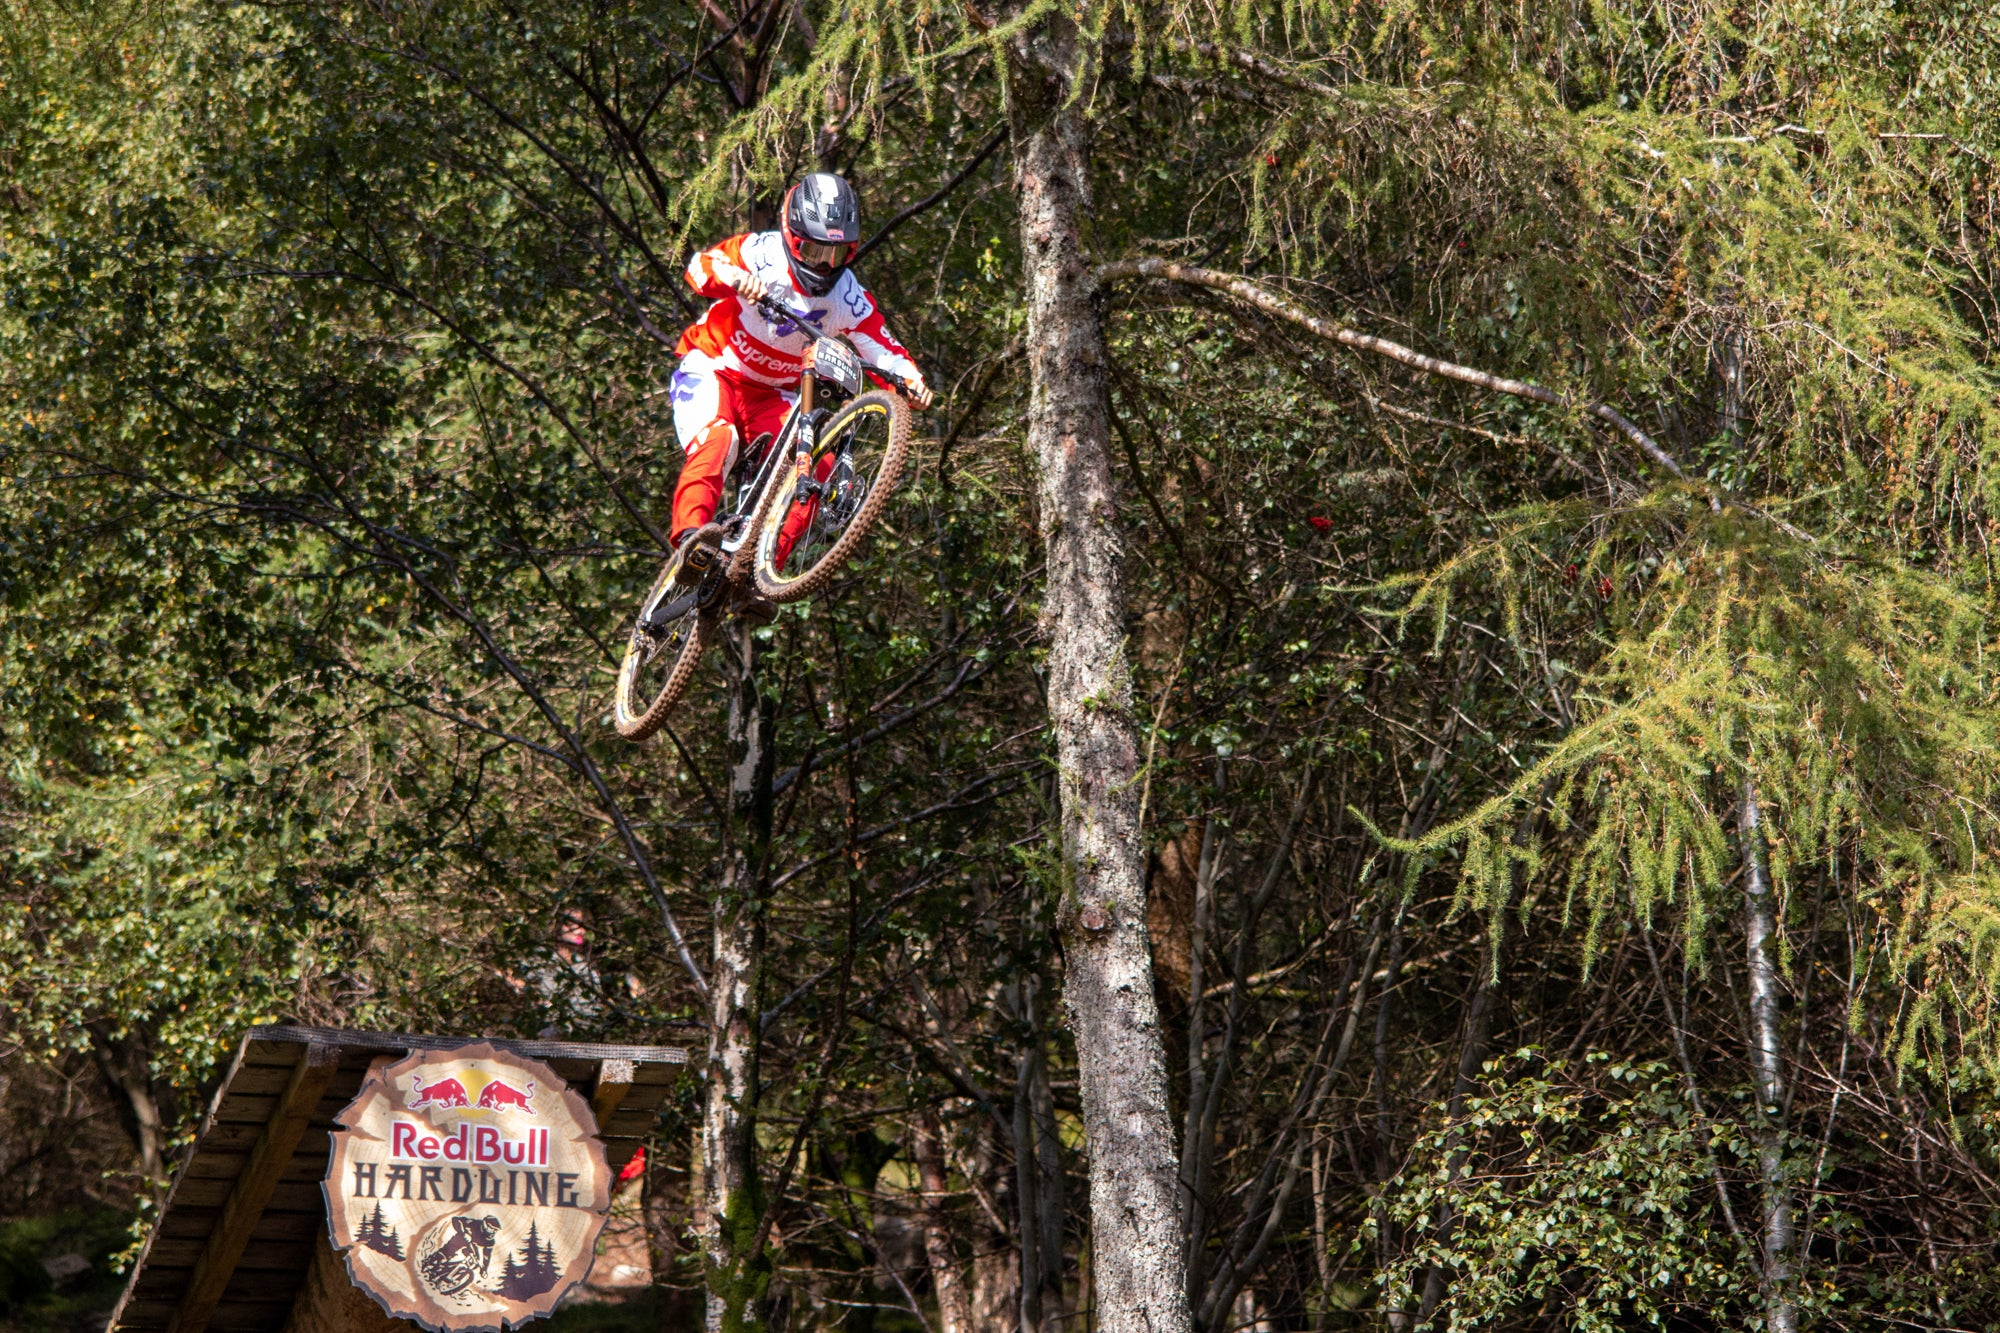 Red Bull Hardline 2019 - Out of Woods